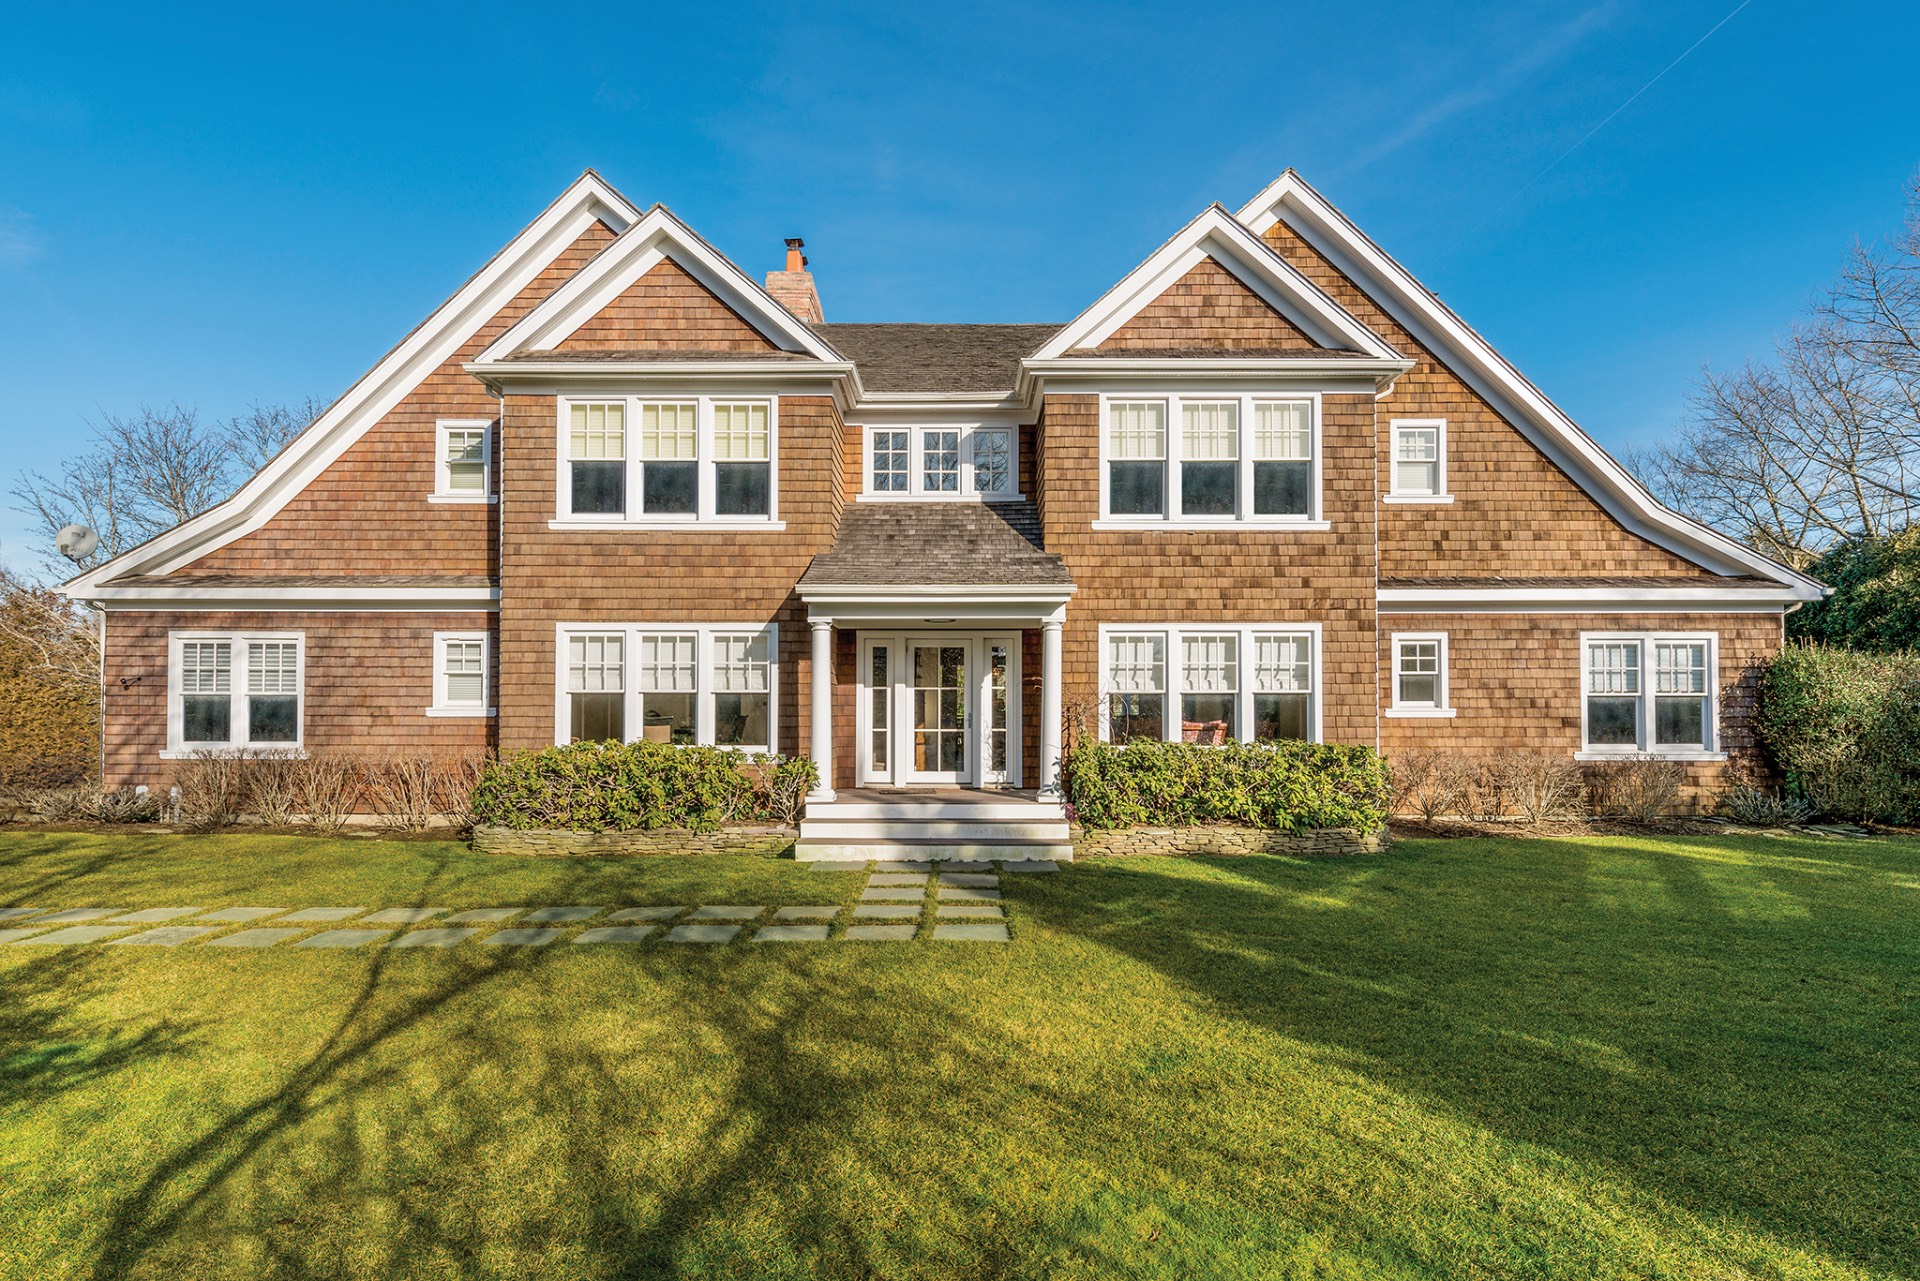 Single Family Home for Sale at Graceful East Hampton South Traditional 8 Amy's Lane, East Hampton, New York